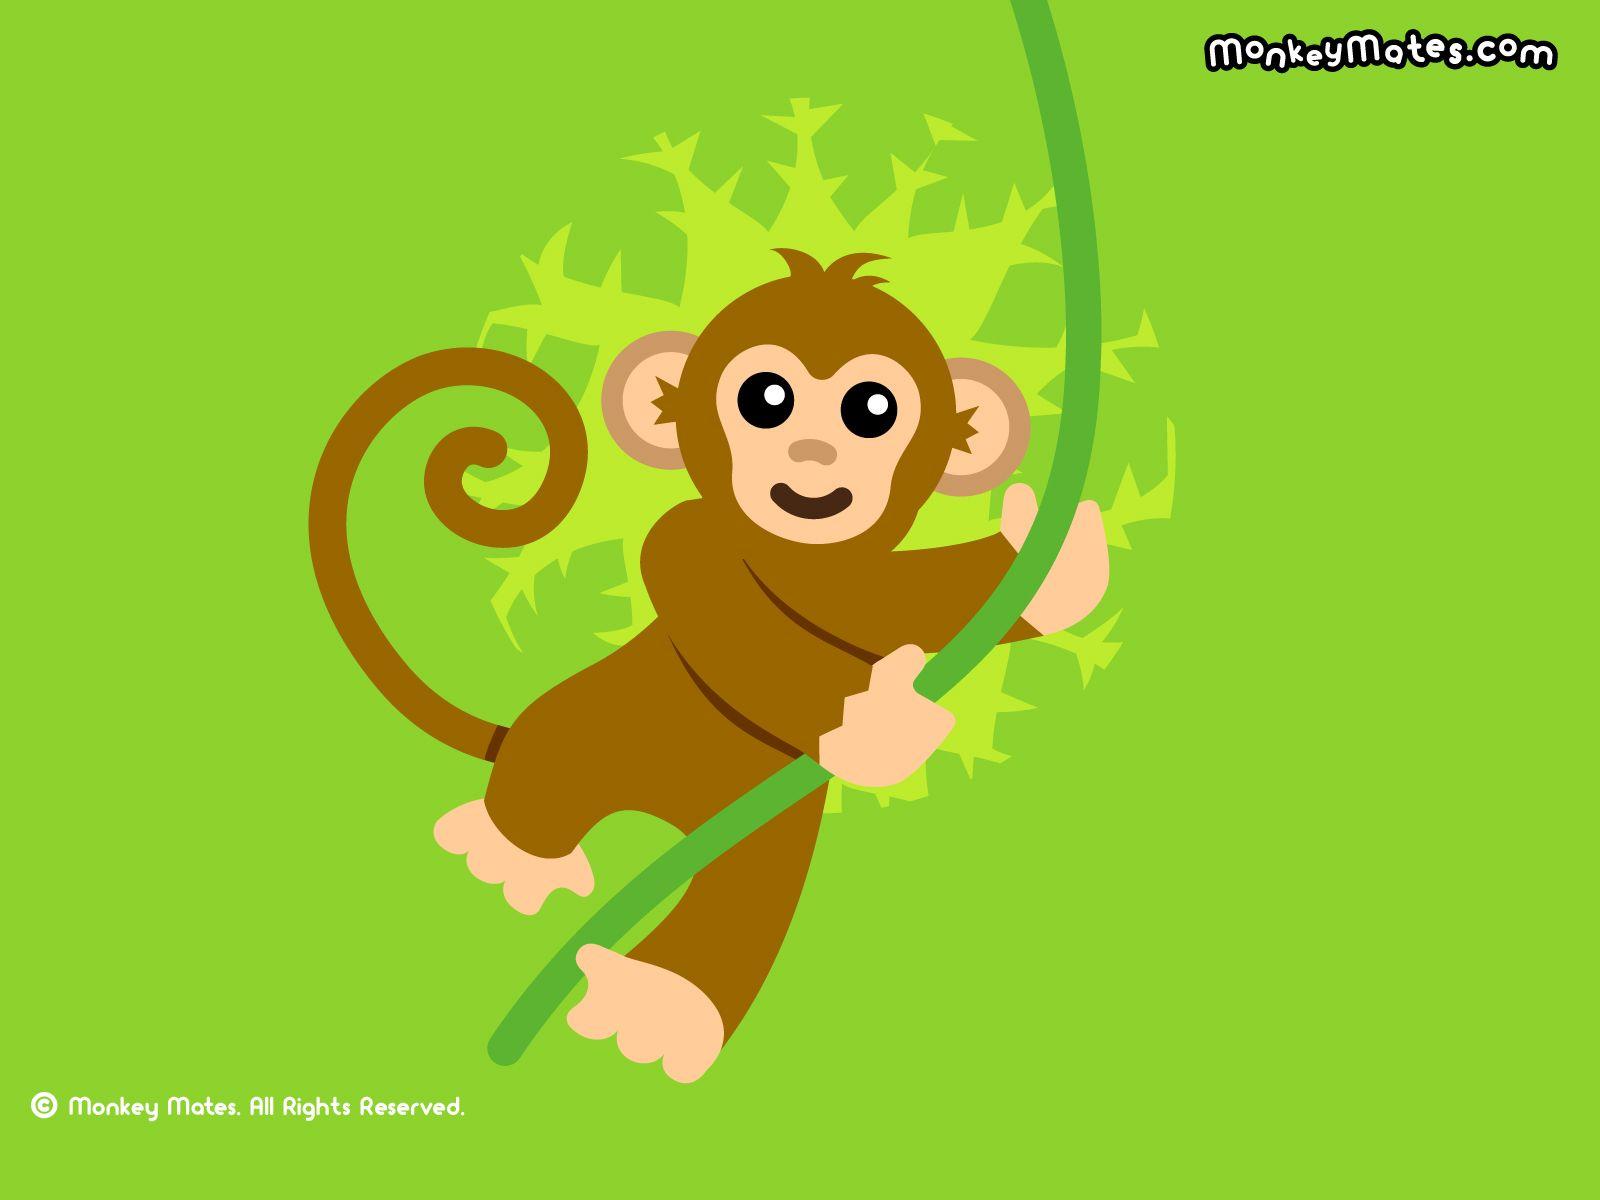 Monkey Wallpaper cartoon monkey wallpapers - wallpaper cave